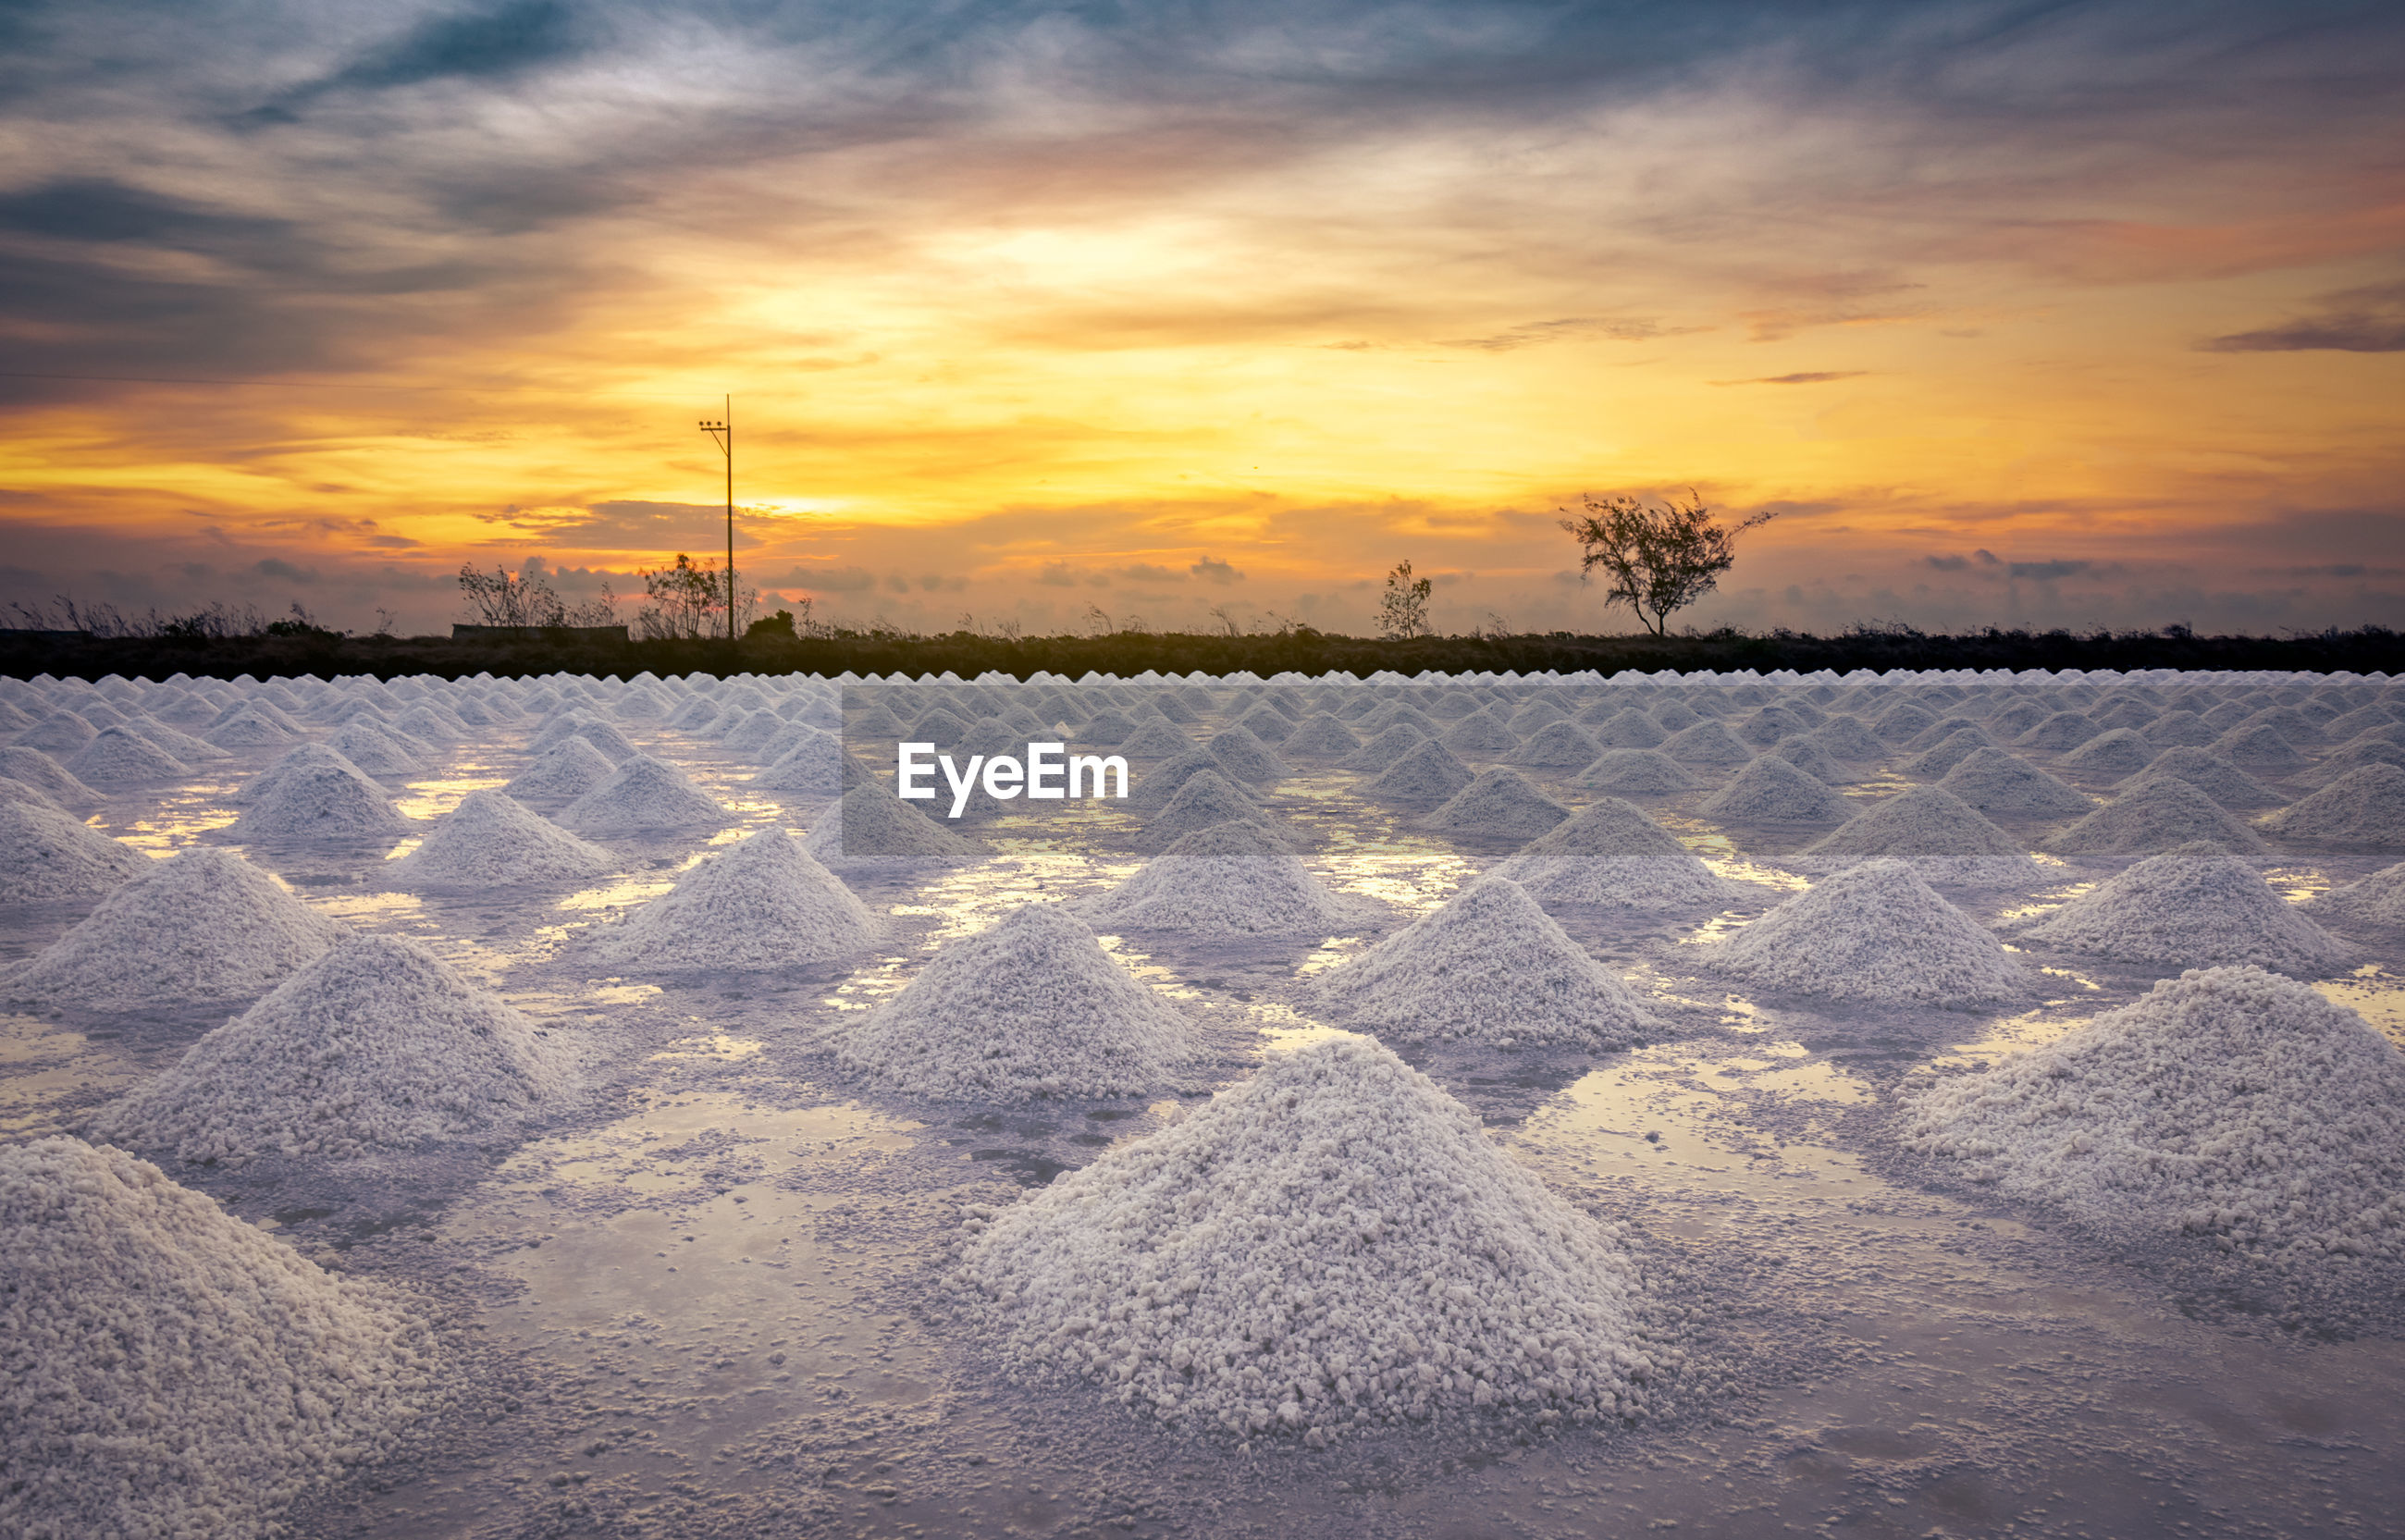 SCENIC VIEW OF SNOWY FIELD AGAINST SKY AT SUNSET